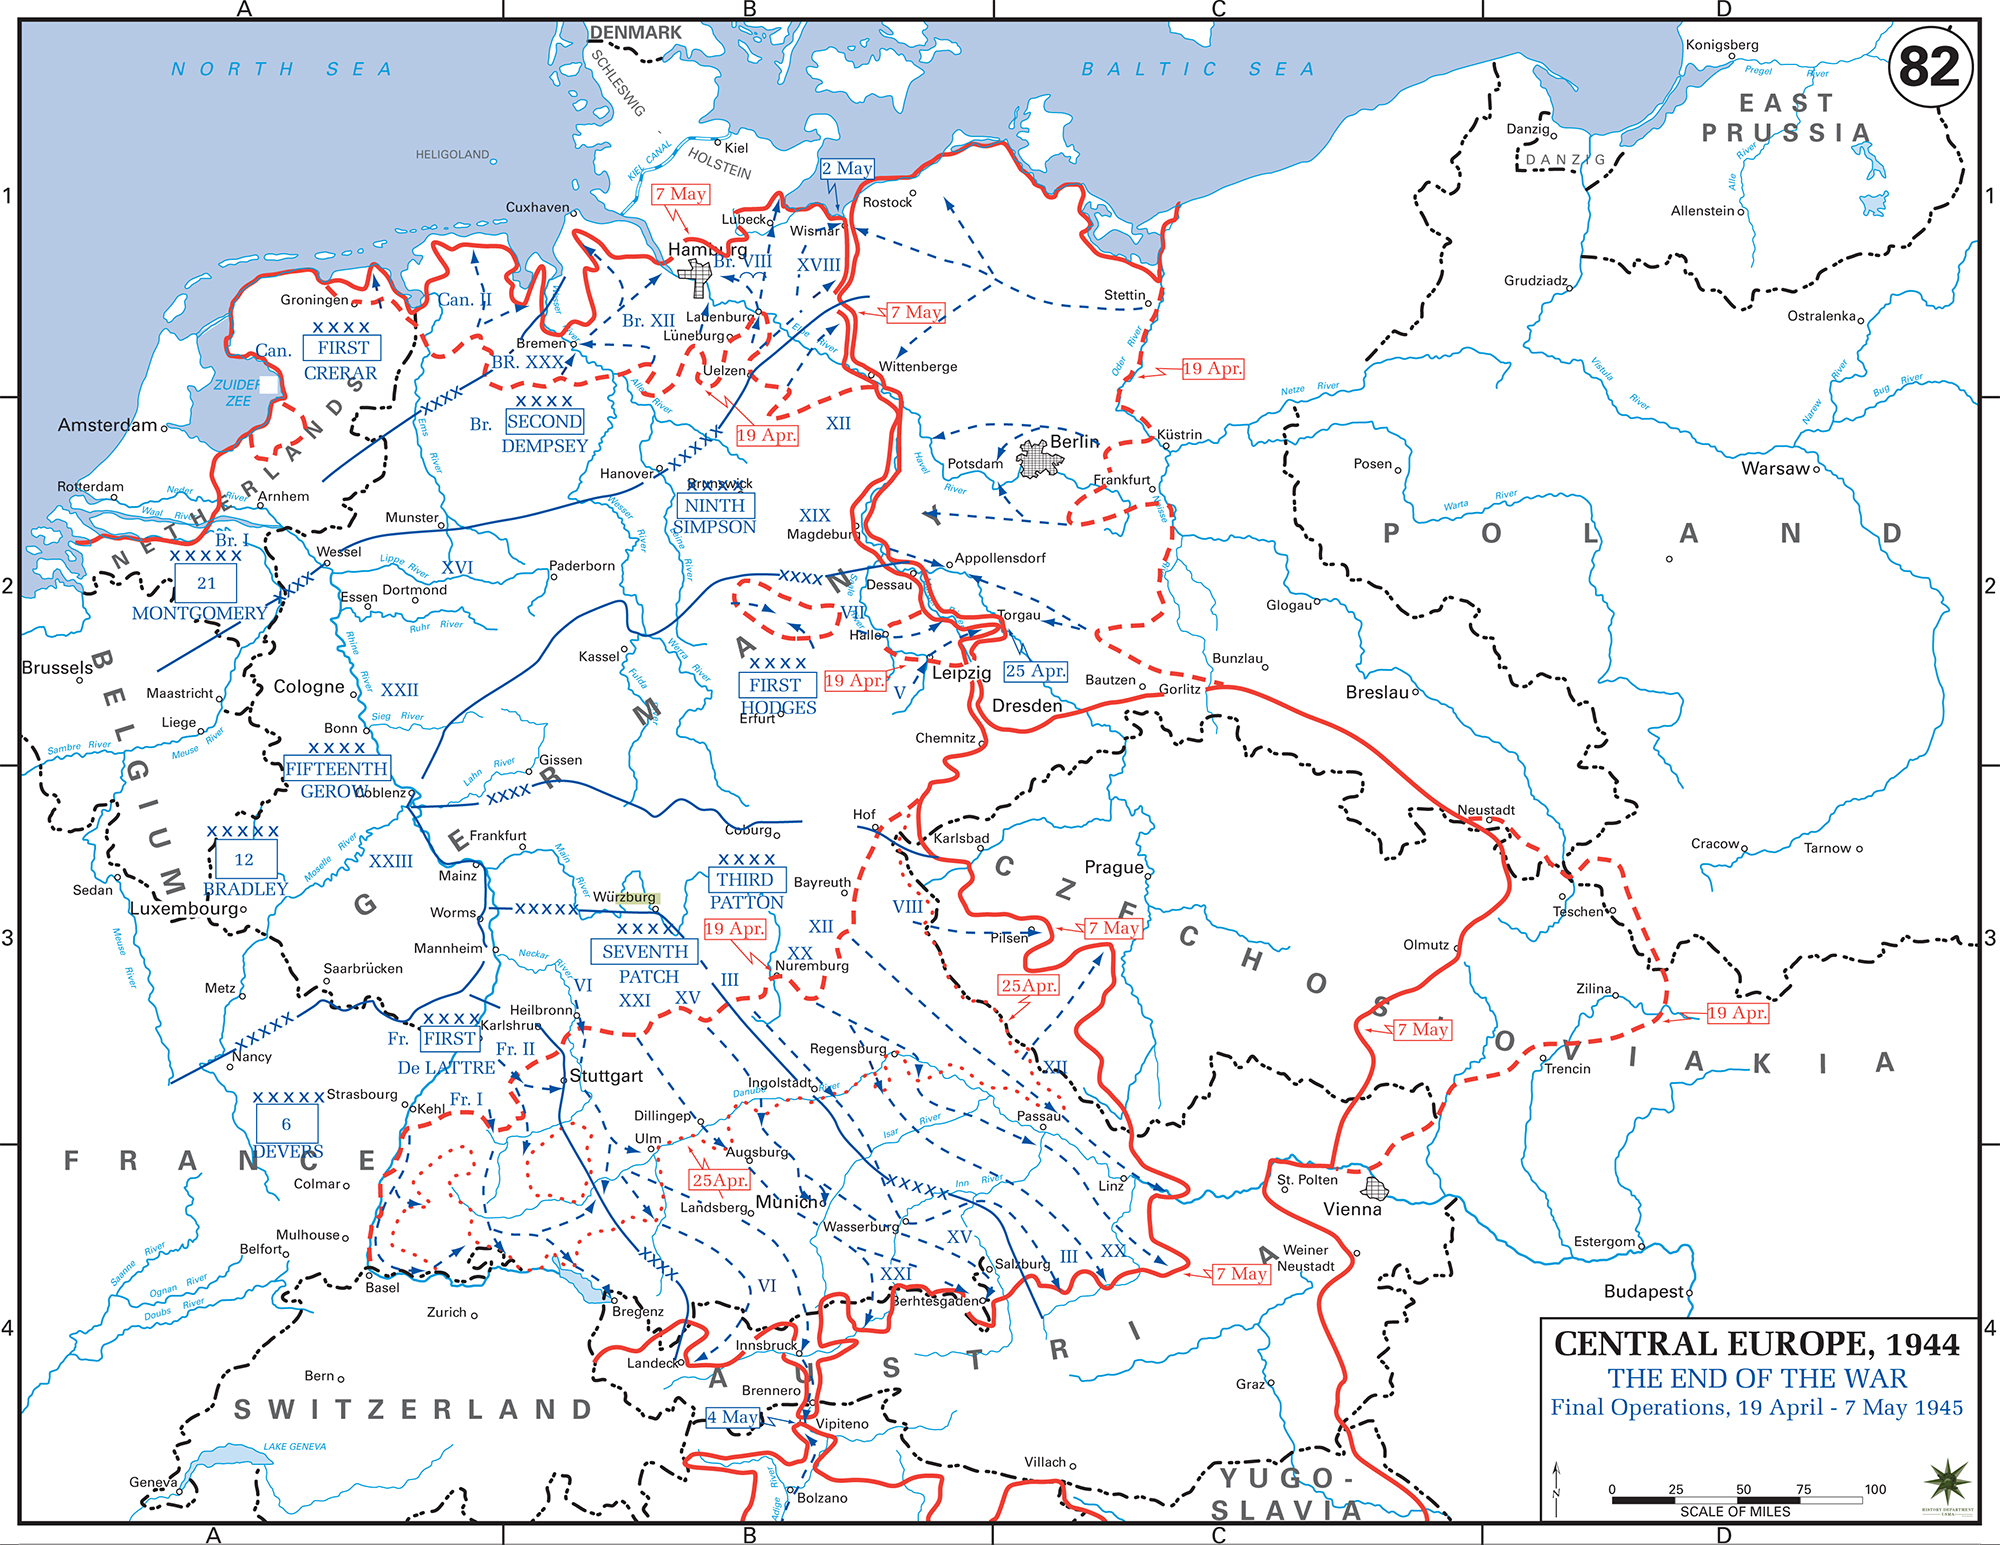 map of world war ii germany final operations april 19 may 7